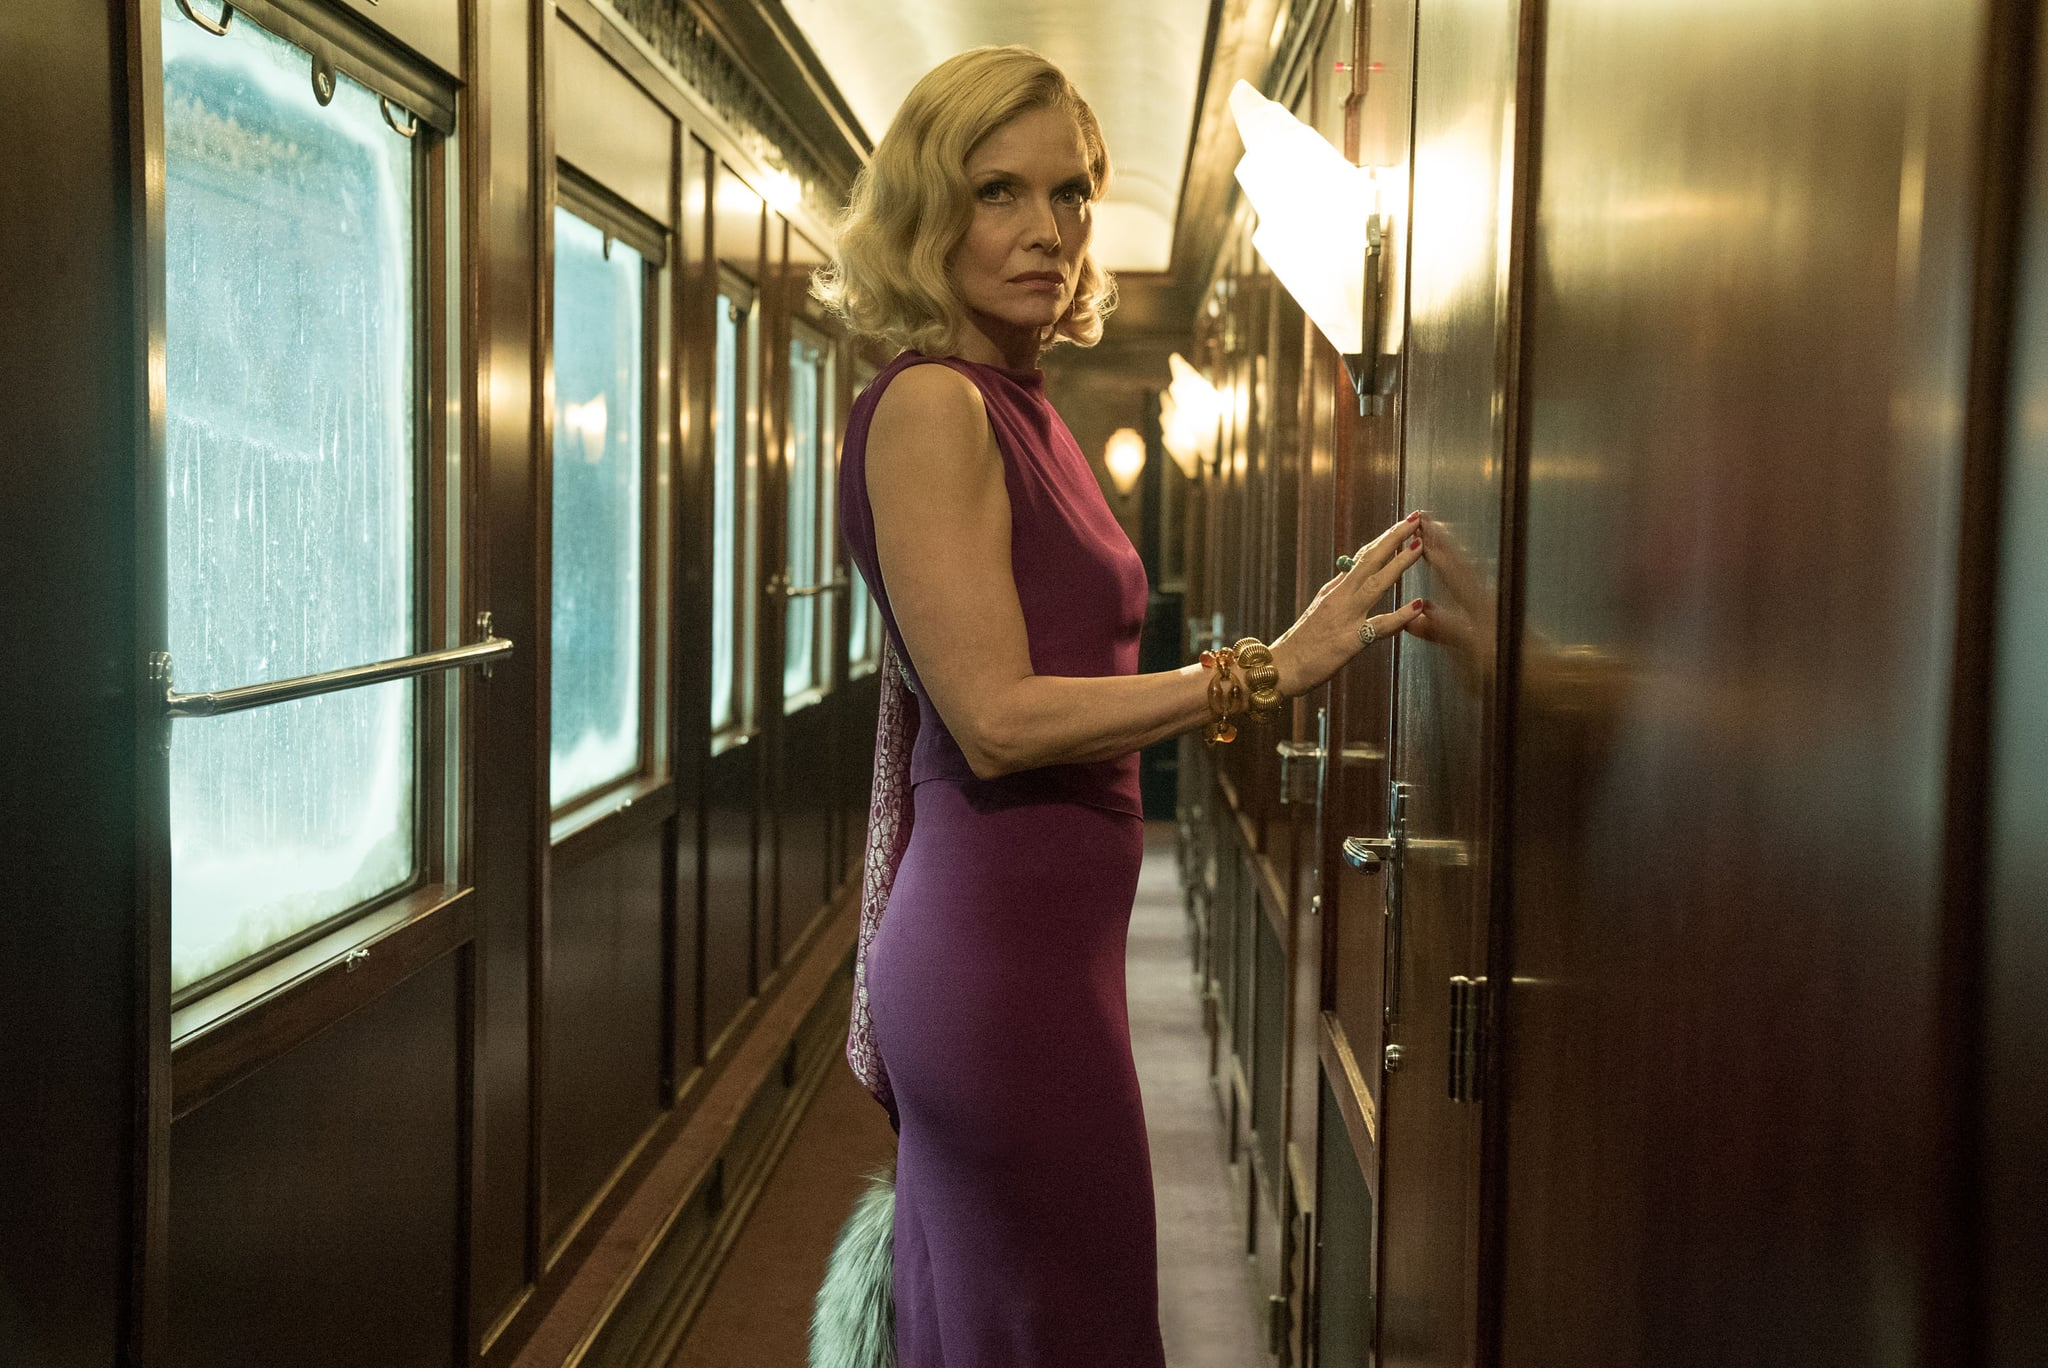 MURDER ON THE ORIENT EXPRESS, Michelle Pfeiffer, 2017. ph: Nicola Dove / TM & copyright  Twentieth Century Fox Film Corporation. All rights reserved. / courtesy Everett Collection